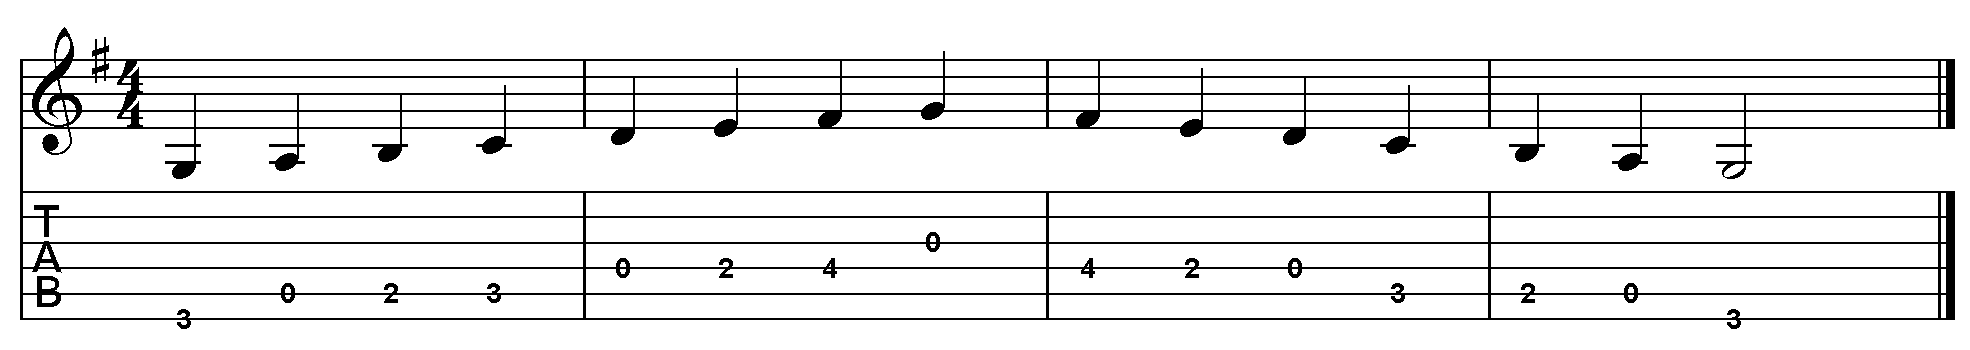 File:G major scale one octave (open position).png - Wikimedia Commons